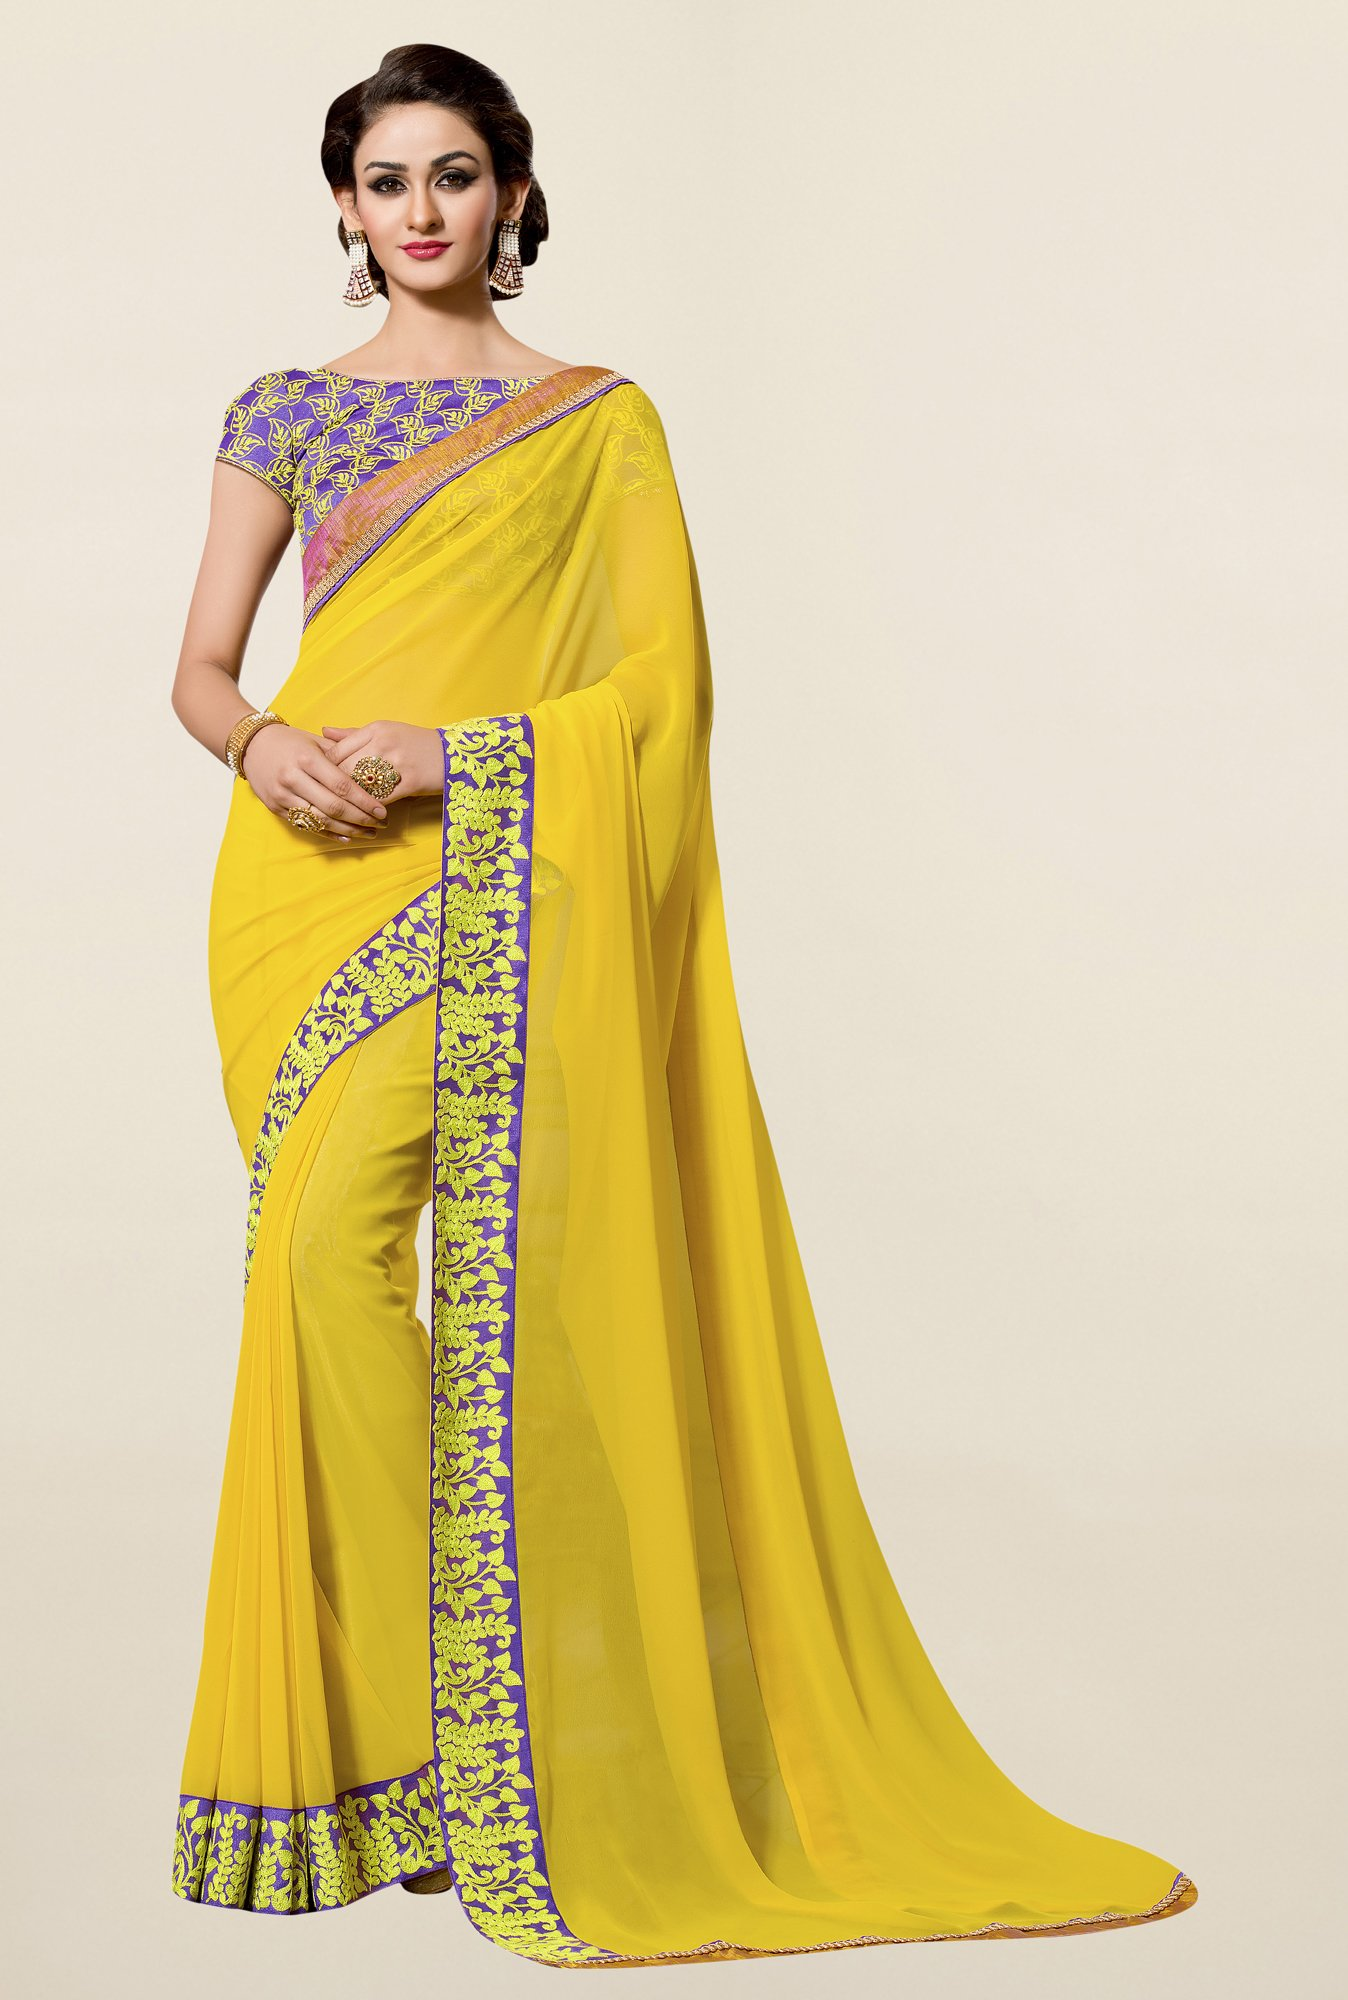 Triveni Yellow Solid Faux Georgette Saree